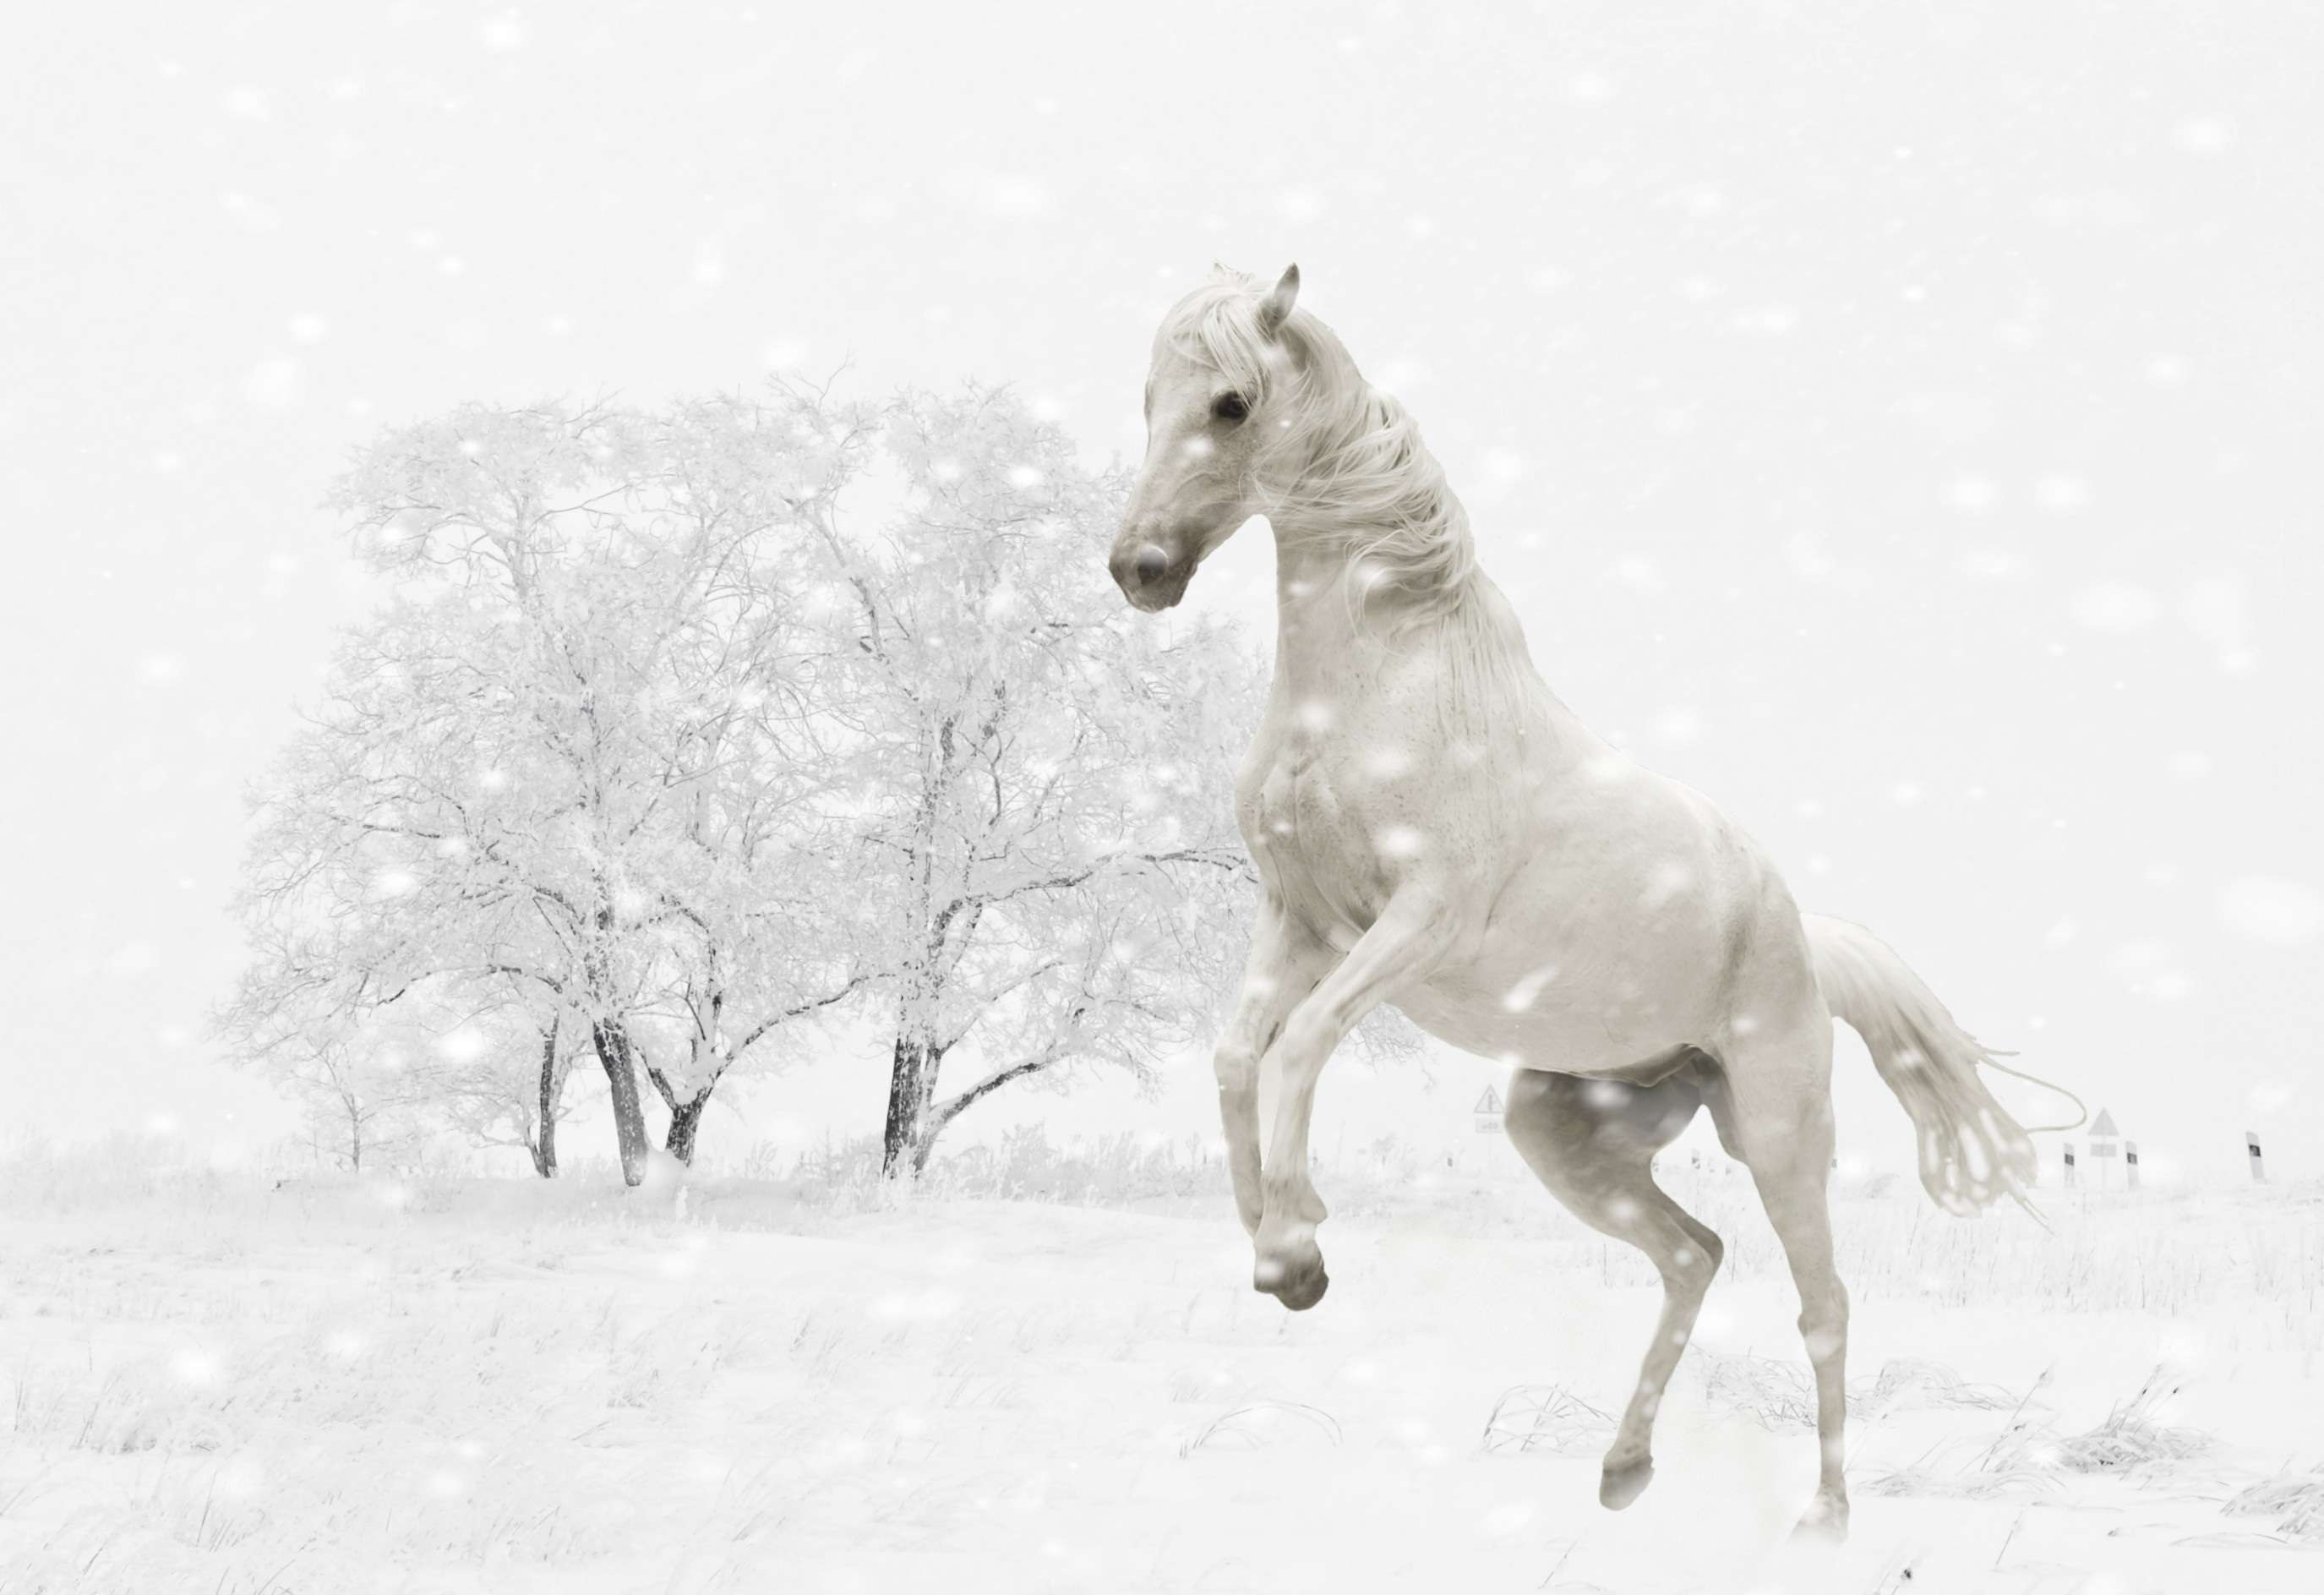 White Horse Is Jumping In The Snow Free Image